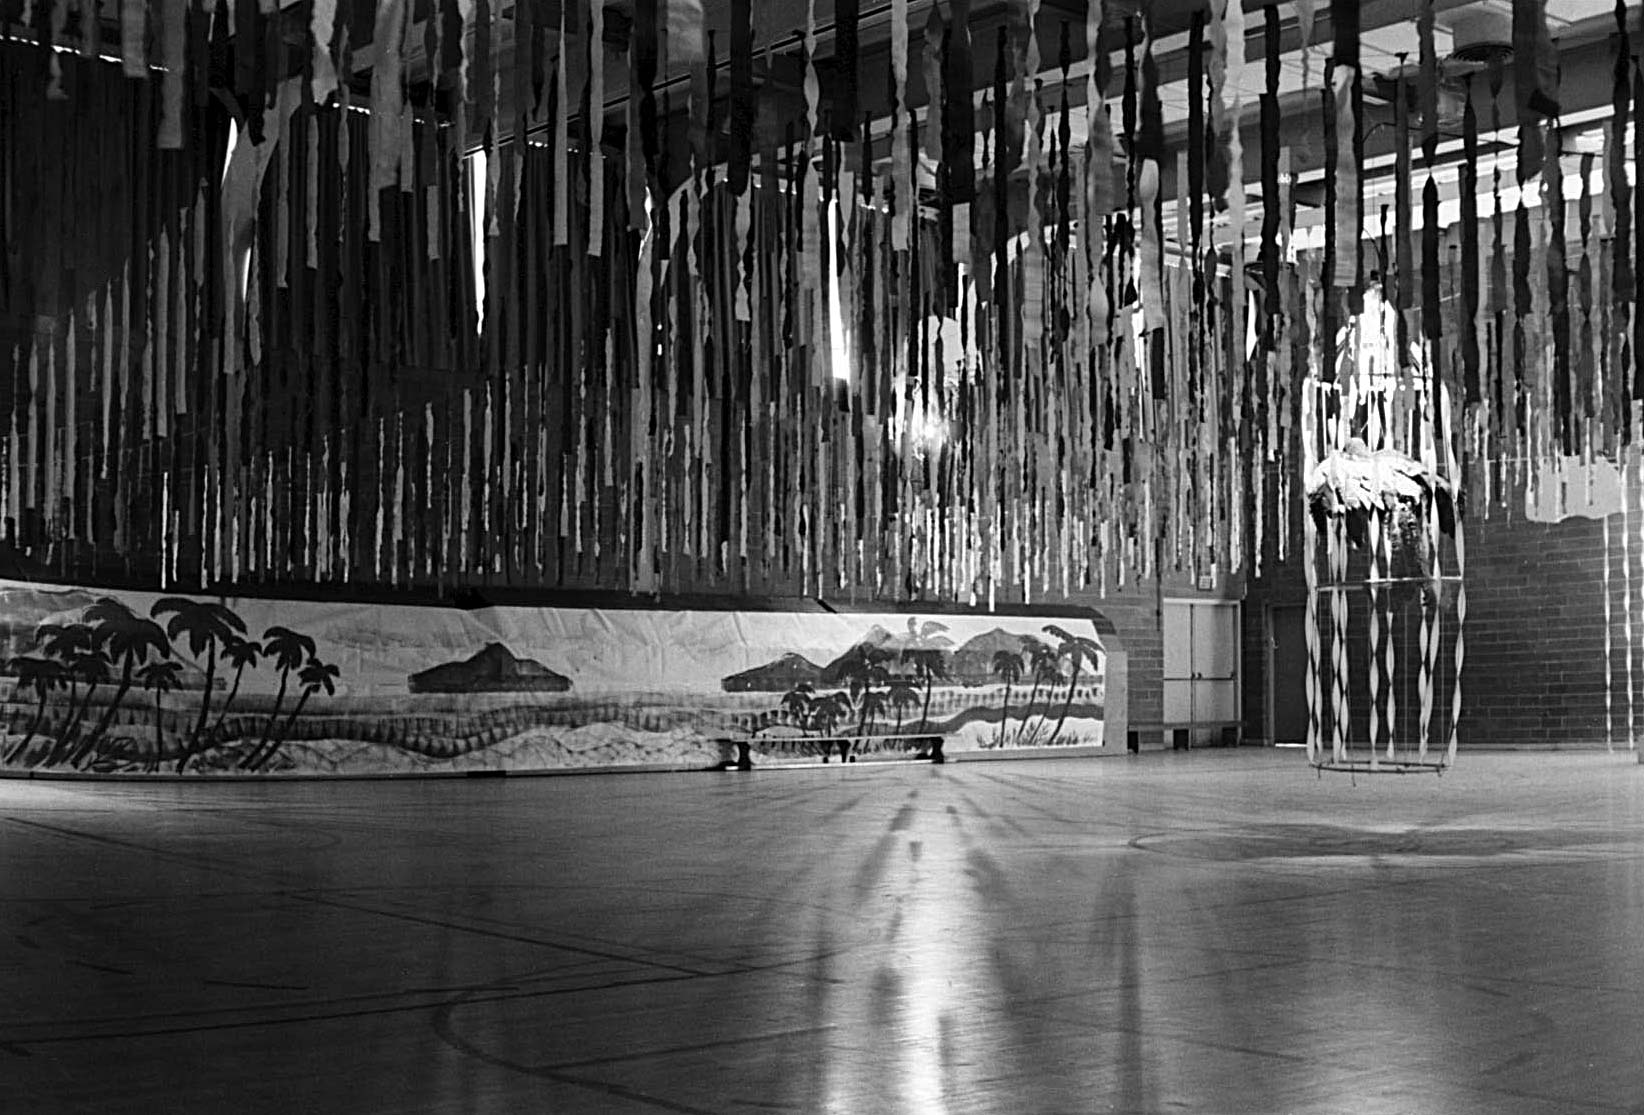 The Decorated Gym with a caged Parrot and sweeping vistas of the Islands